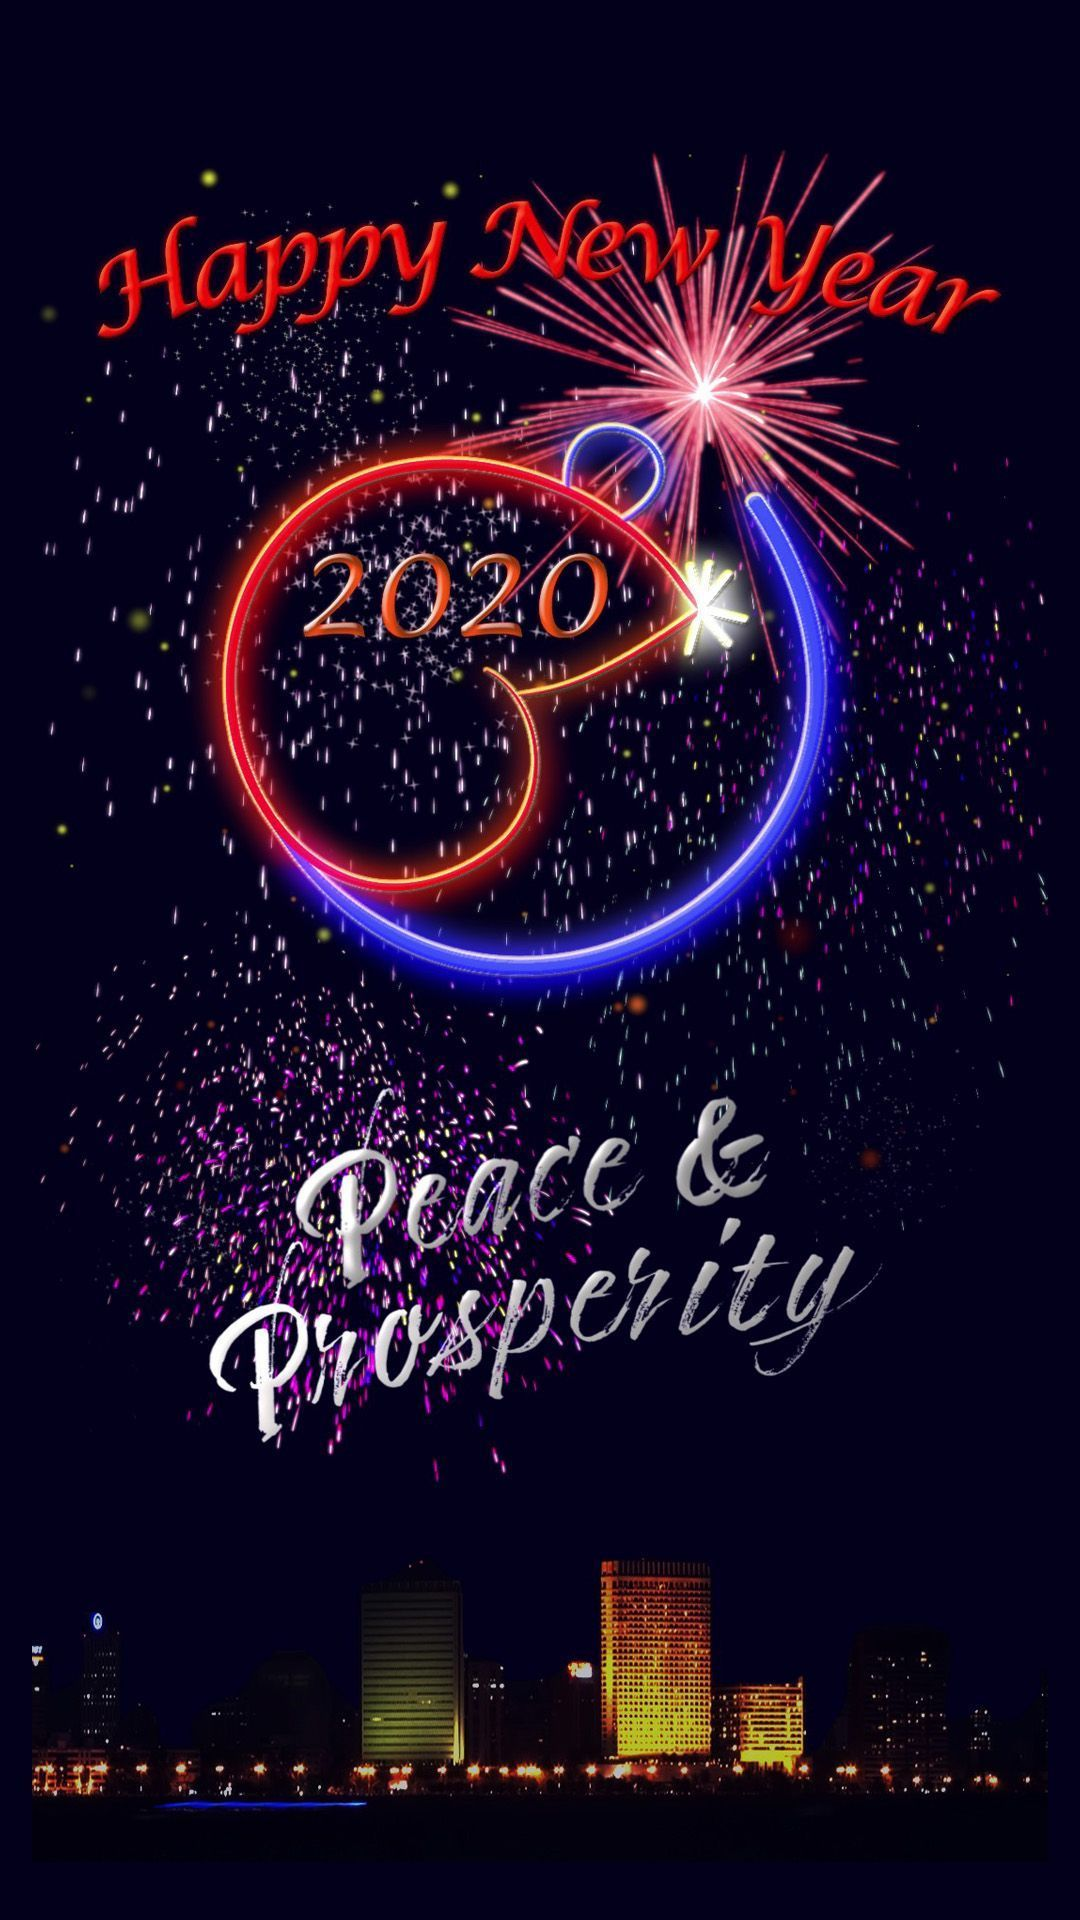 Happy Lunar New Year 2020 Quotes Happy Lunar New Year 2020 In 2020 Happy Lunar New Year Happy New Year Message New Year 2020